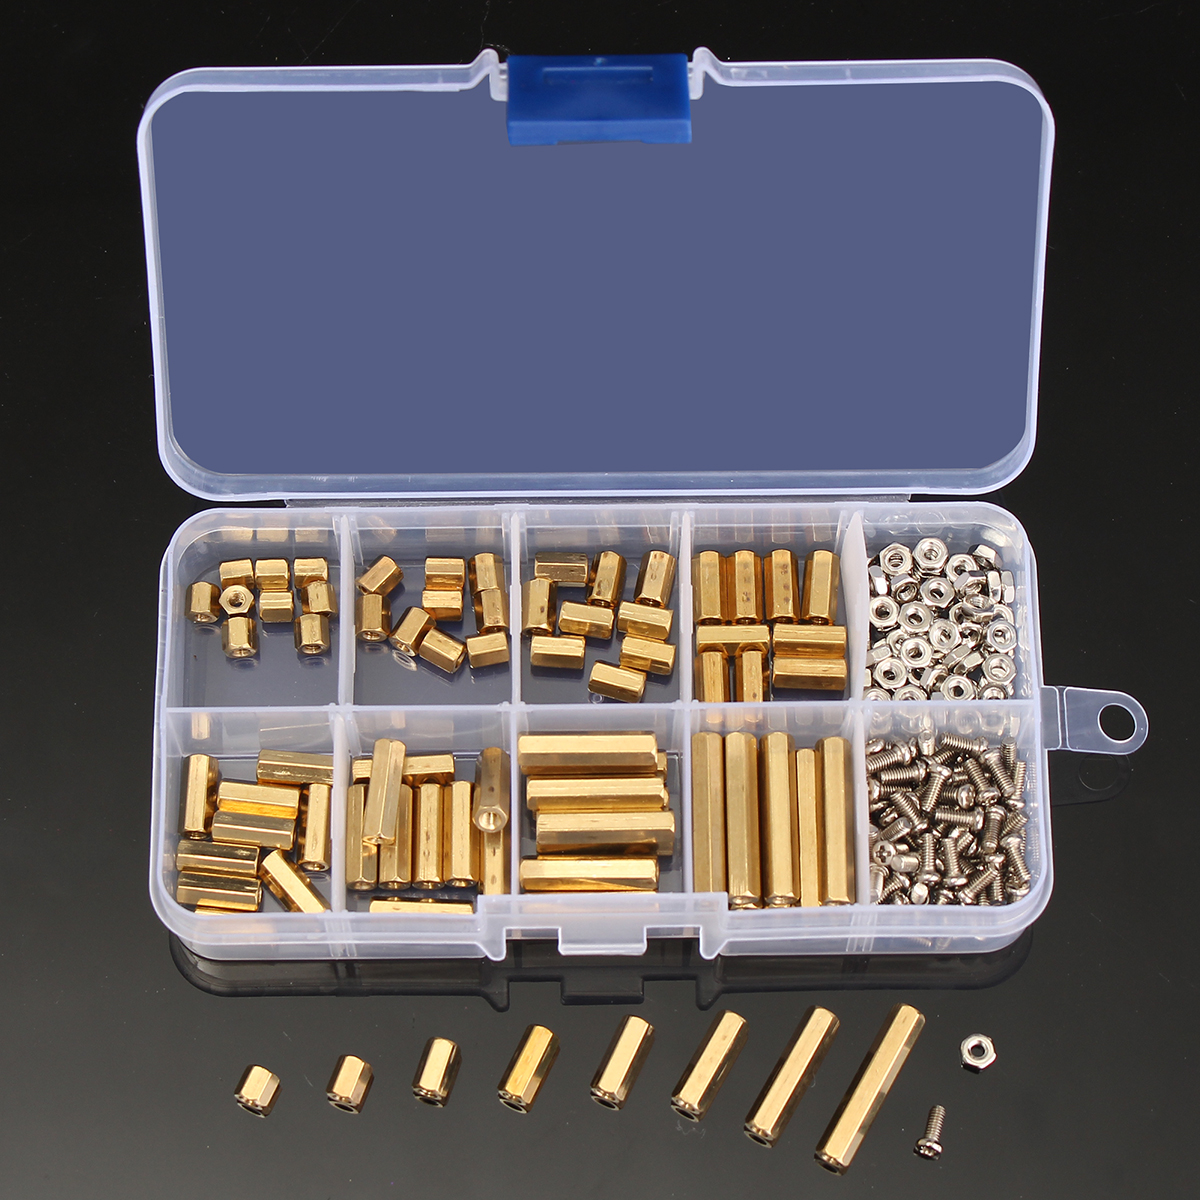 240pcs M2.5 2.5mm Brass Standoff Spacer Male x Female With M2.5 Pan Head Screws and m2.5 hex nut Assortment Kit Cap Screw 158mm losmandy dovetail clamp with brass screw and 2 locking screws